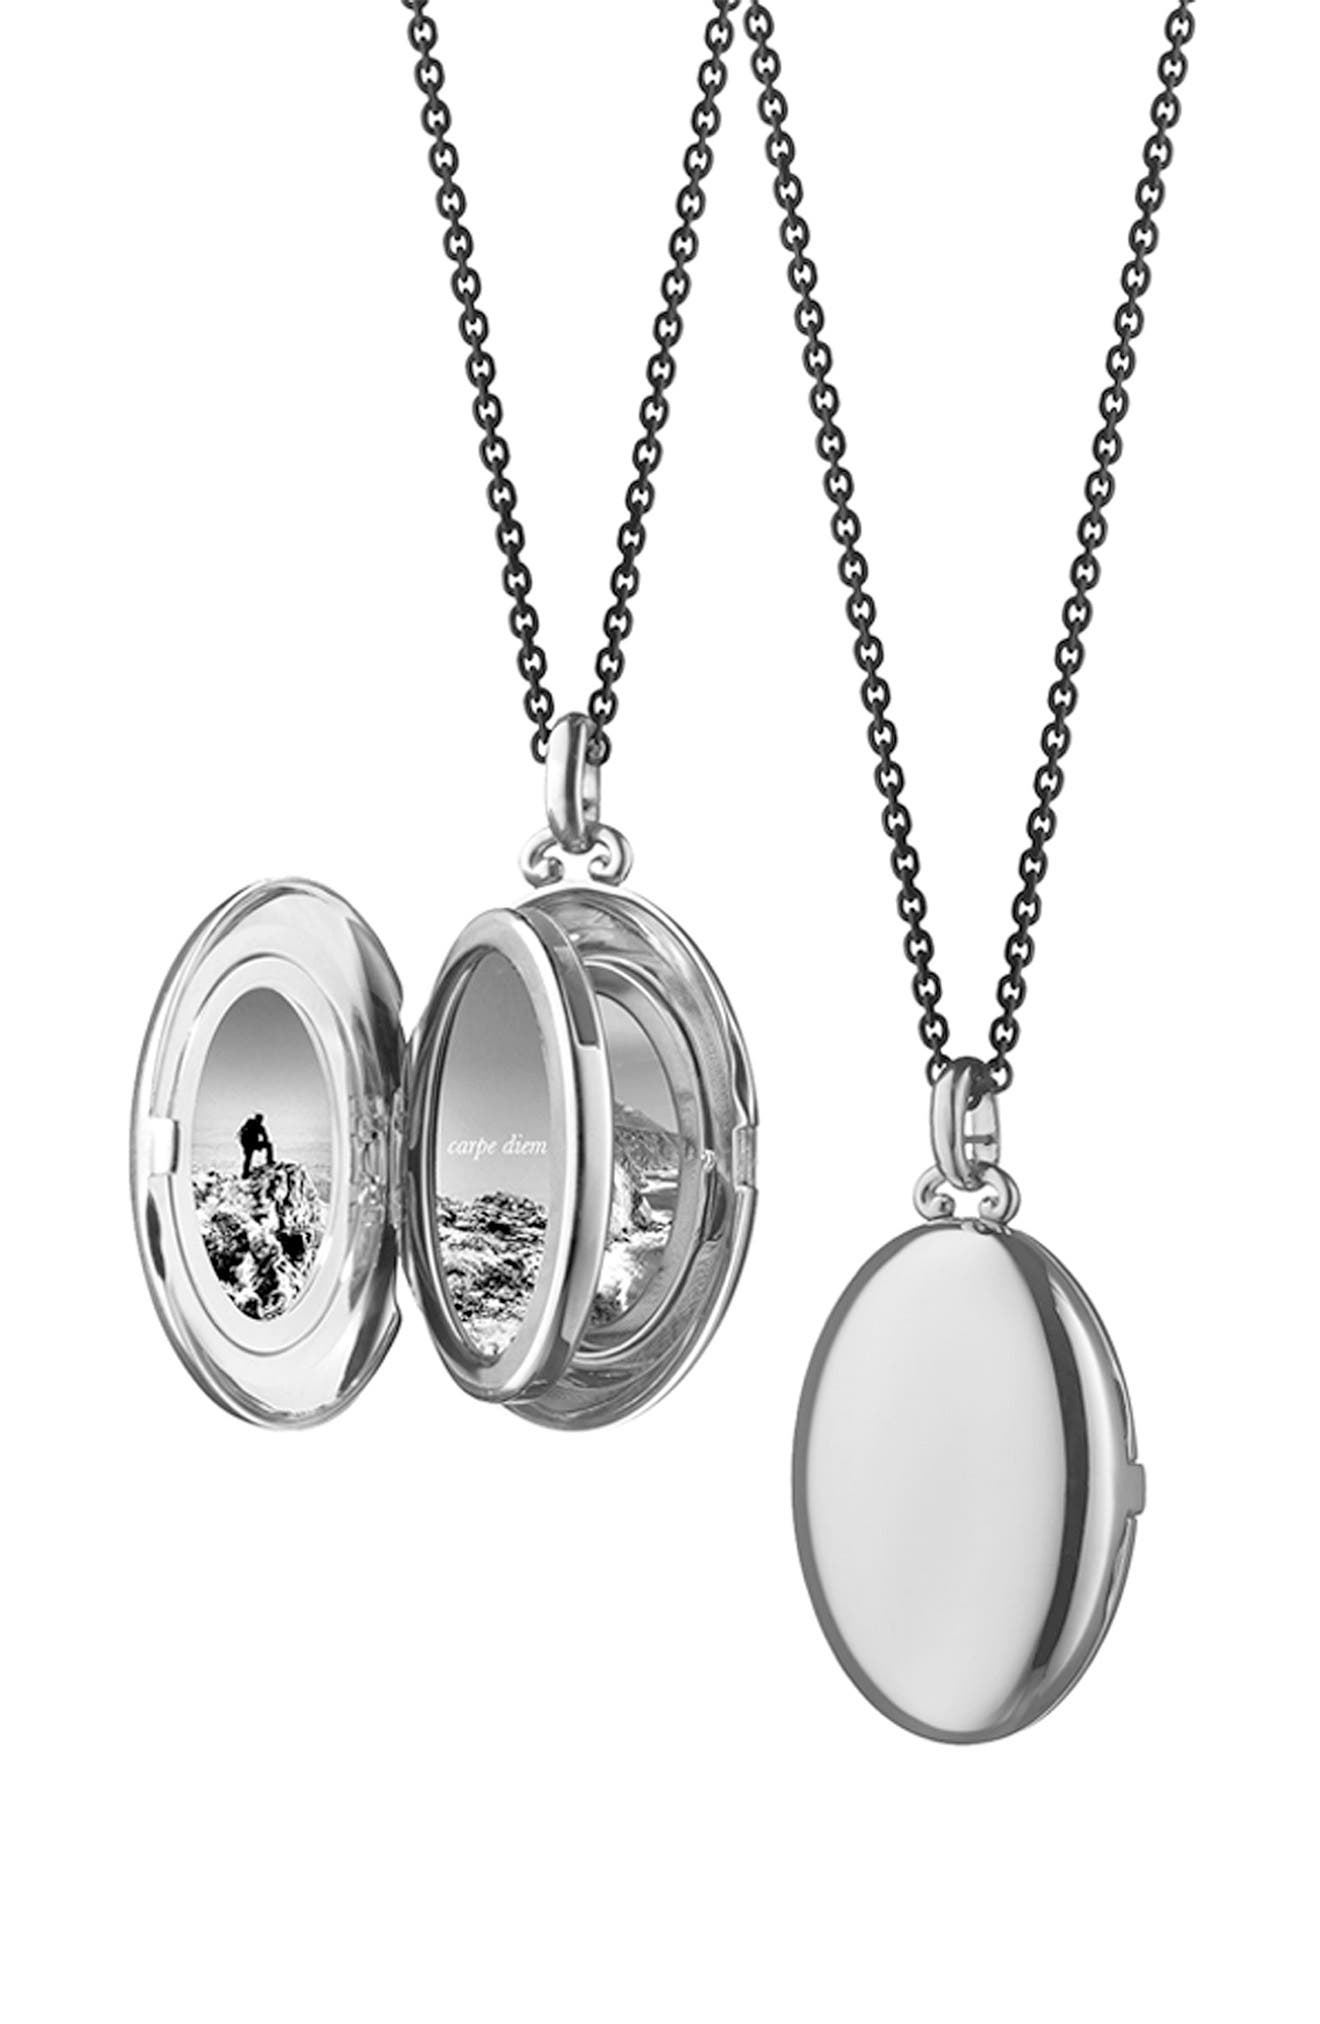 Four Image Mini Locket Necklace,                             Alternate thumbnail 4, color,                             STERLING SILVER/ BLACK STEEL